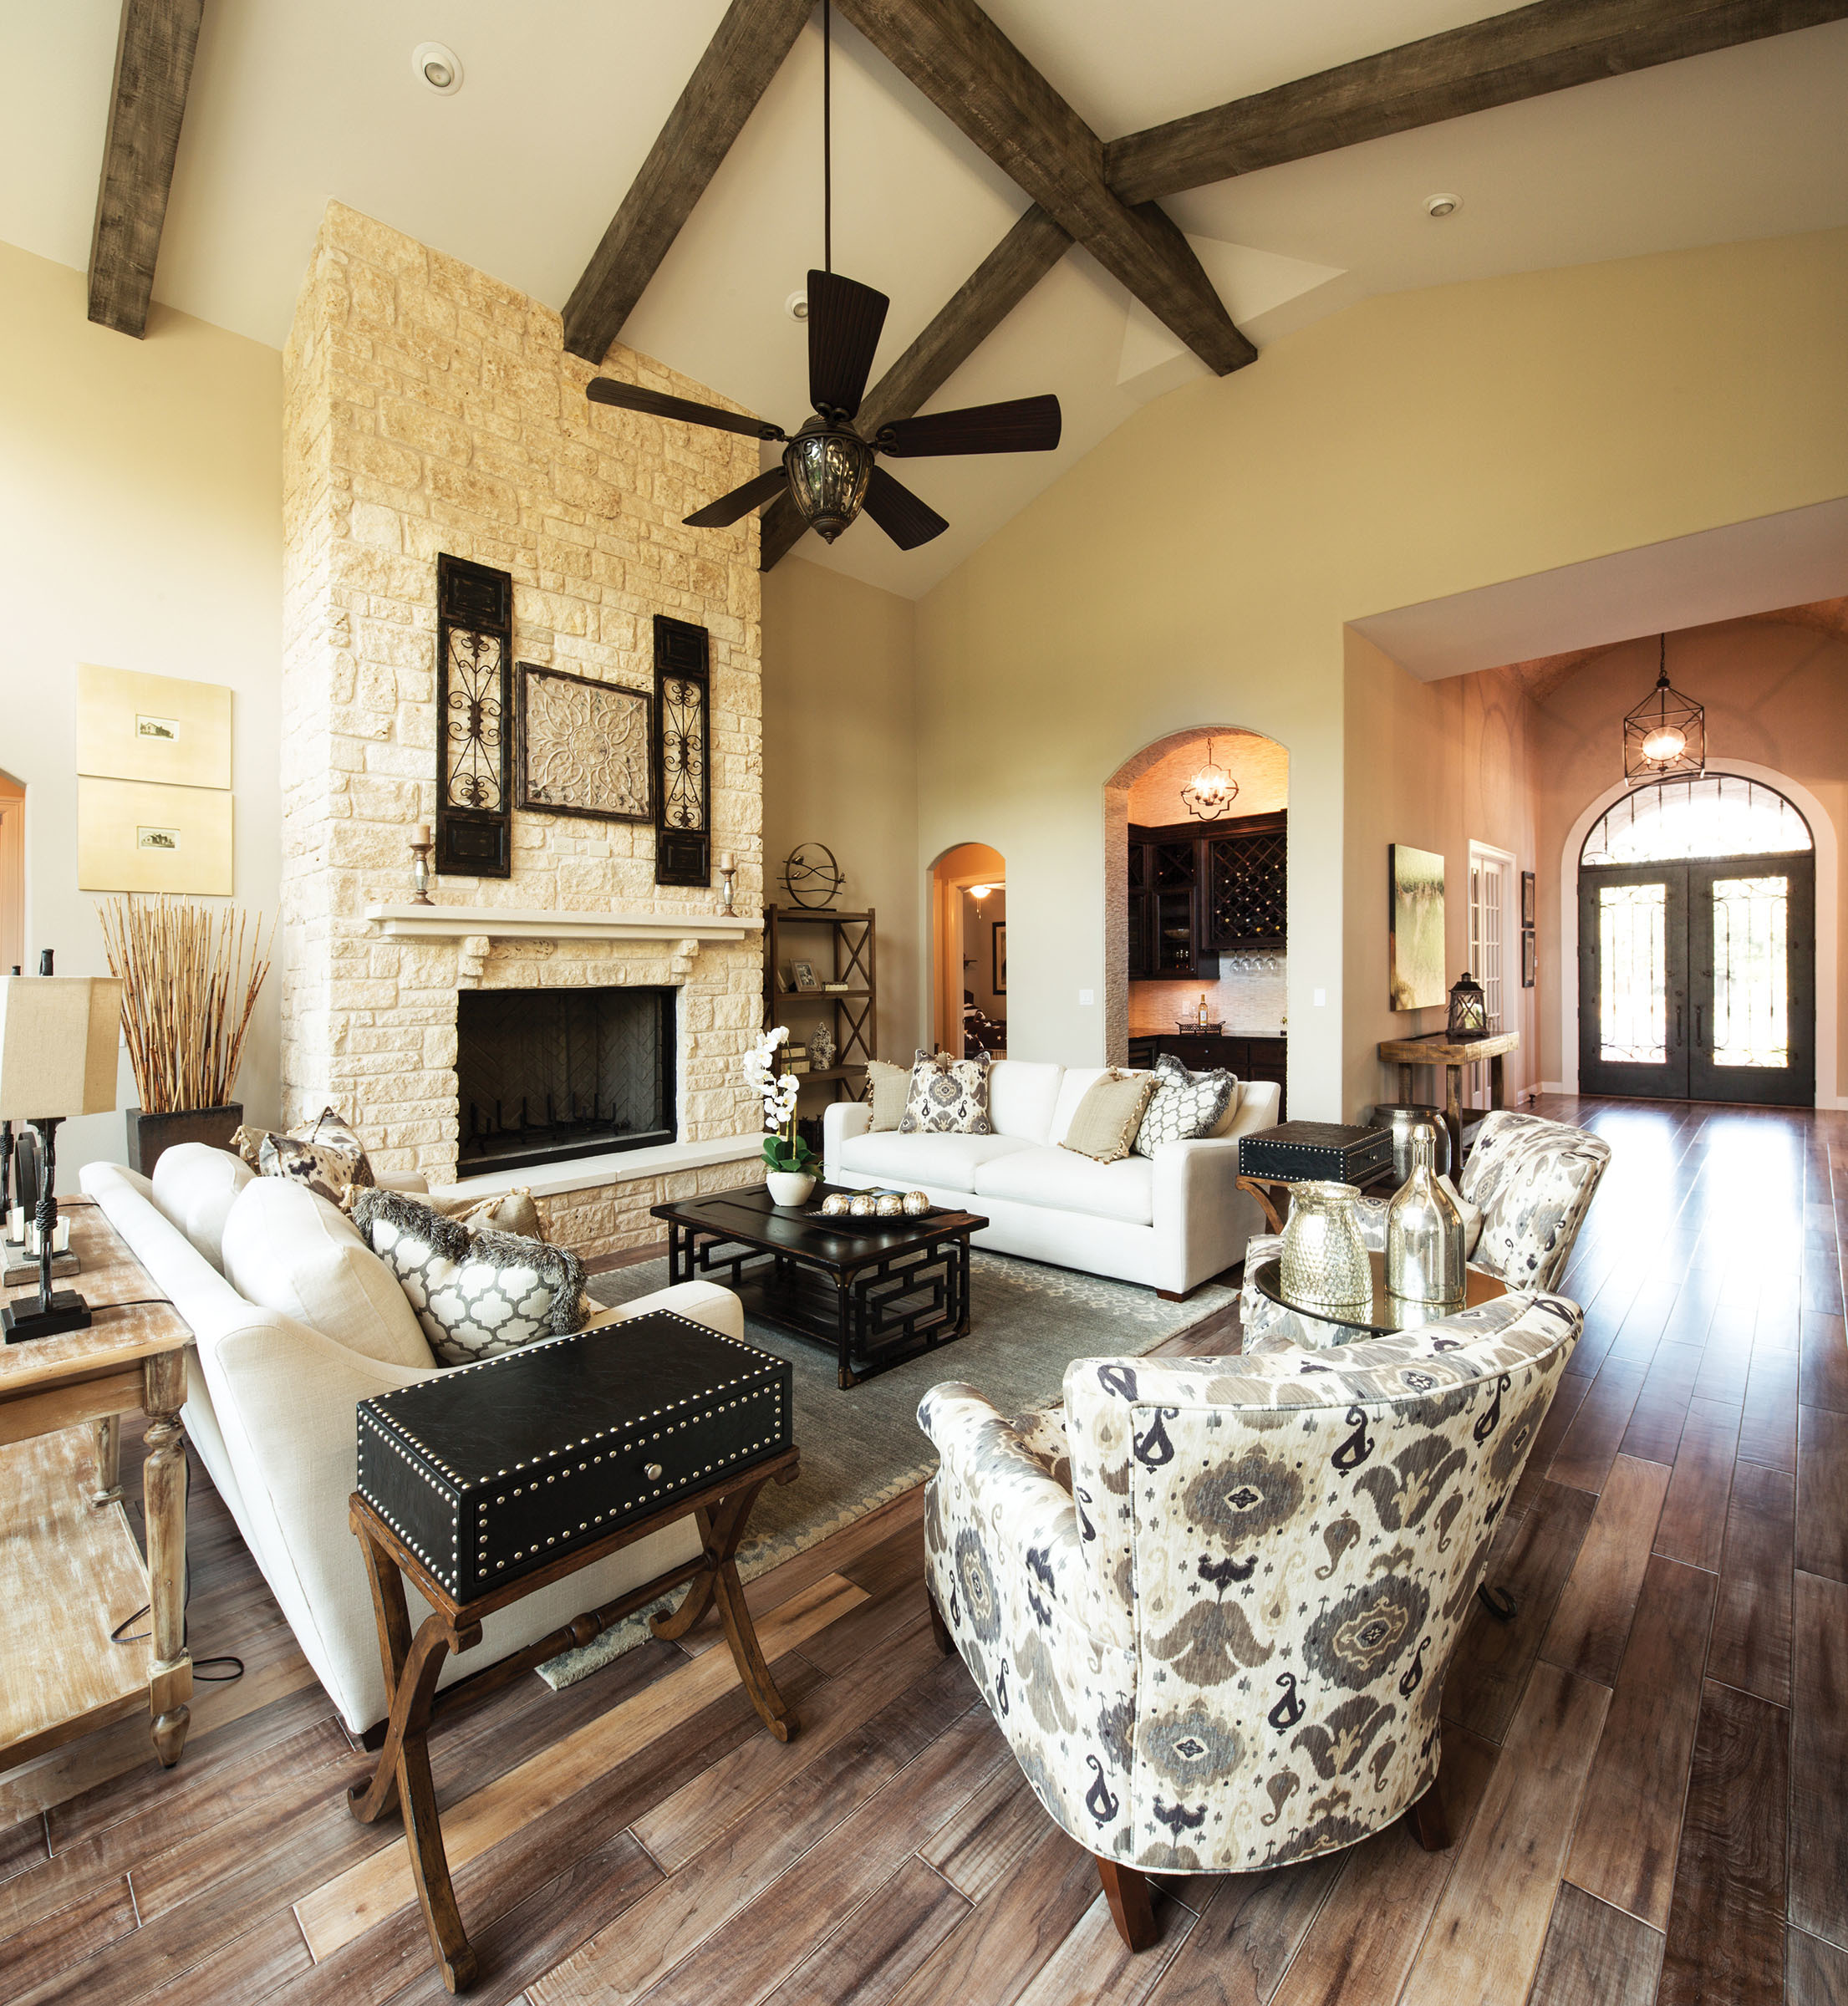 The available home on a meticulously manicured acre in Bella Montagna features a family room with large windows, an ornate ceiling and a floor-to-ceiling stone fireplace.